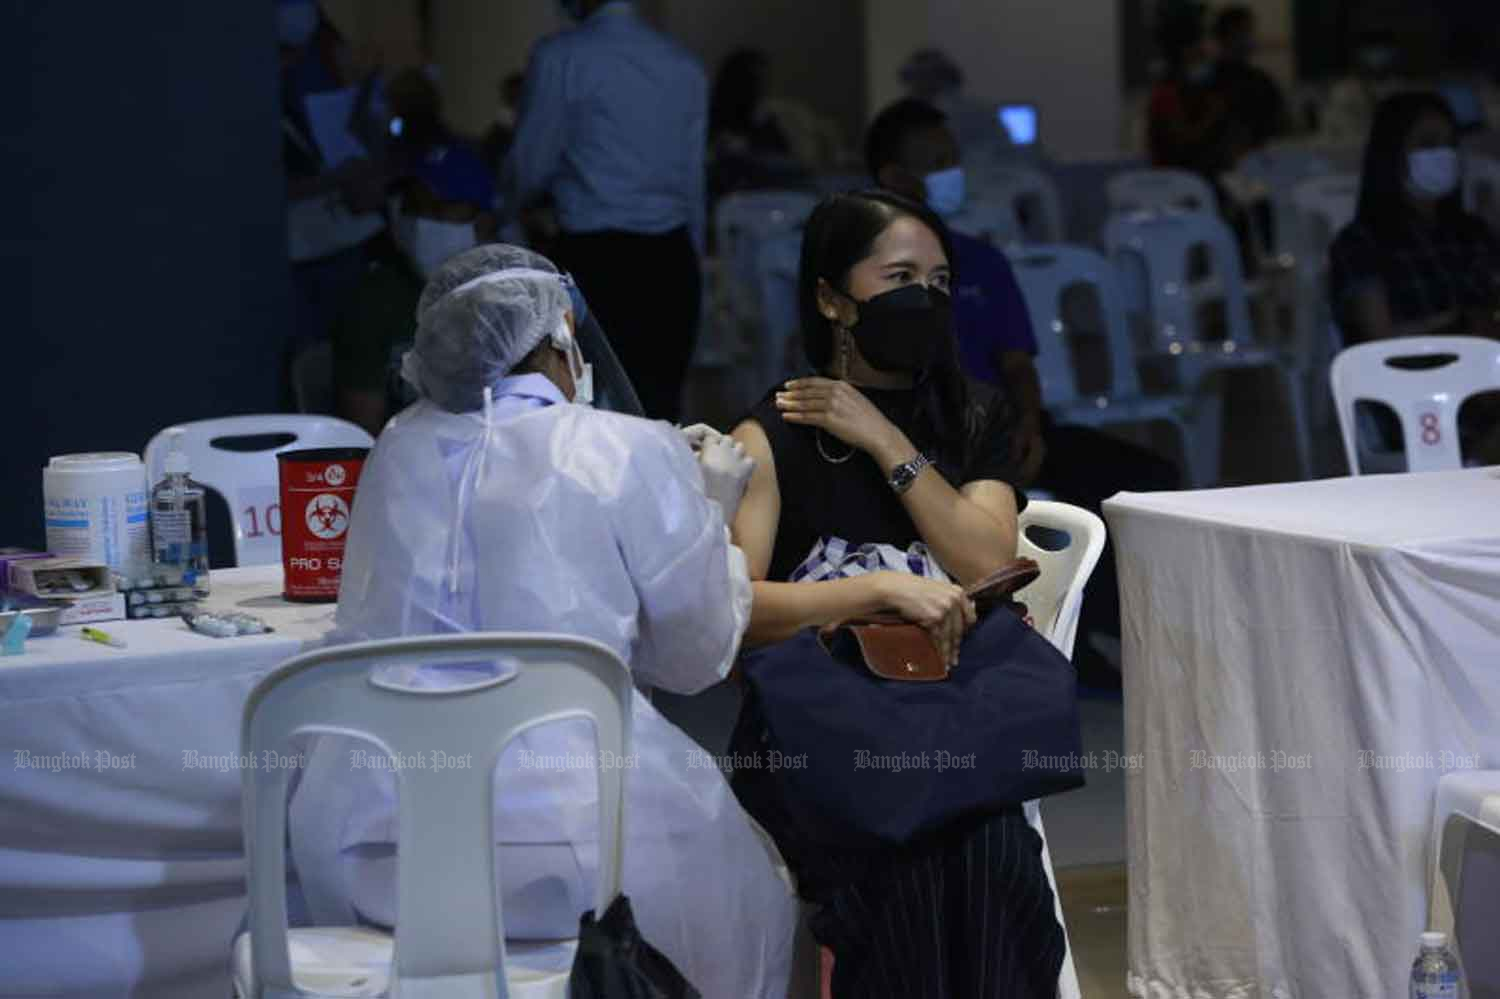 A member of the Social Security Fund receives a Covid-19 vaccine in Bangkok on Wednesday. (Photo: Arnun Chonmahatrakool)